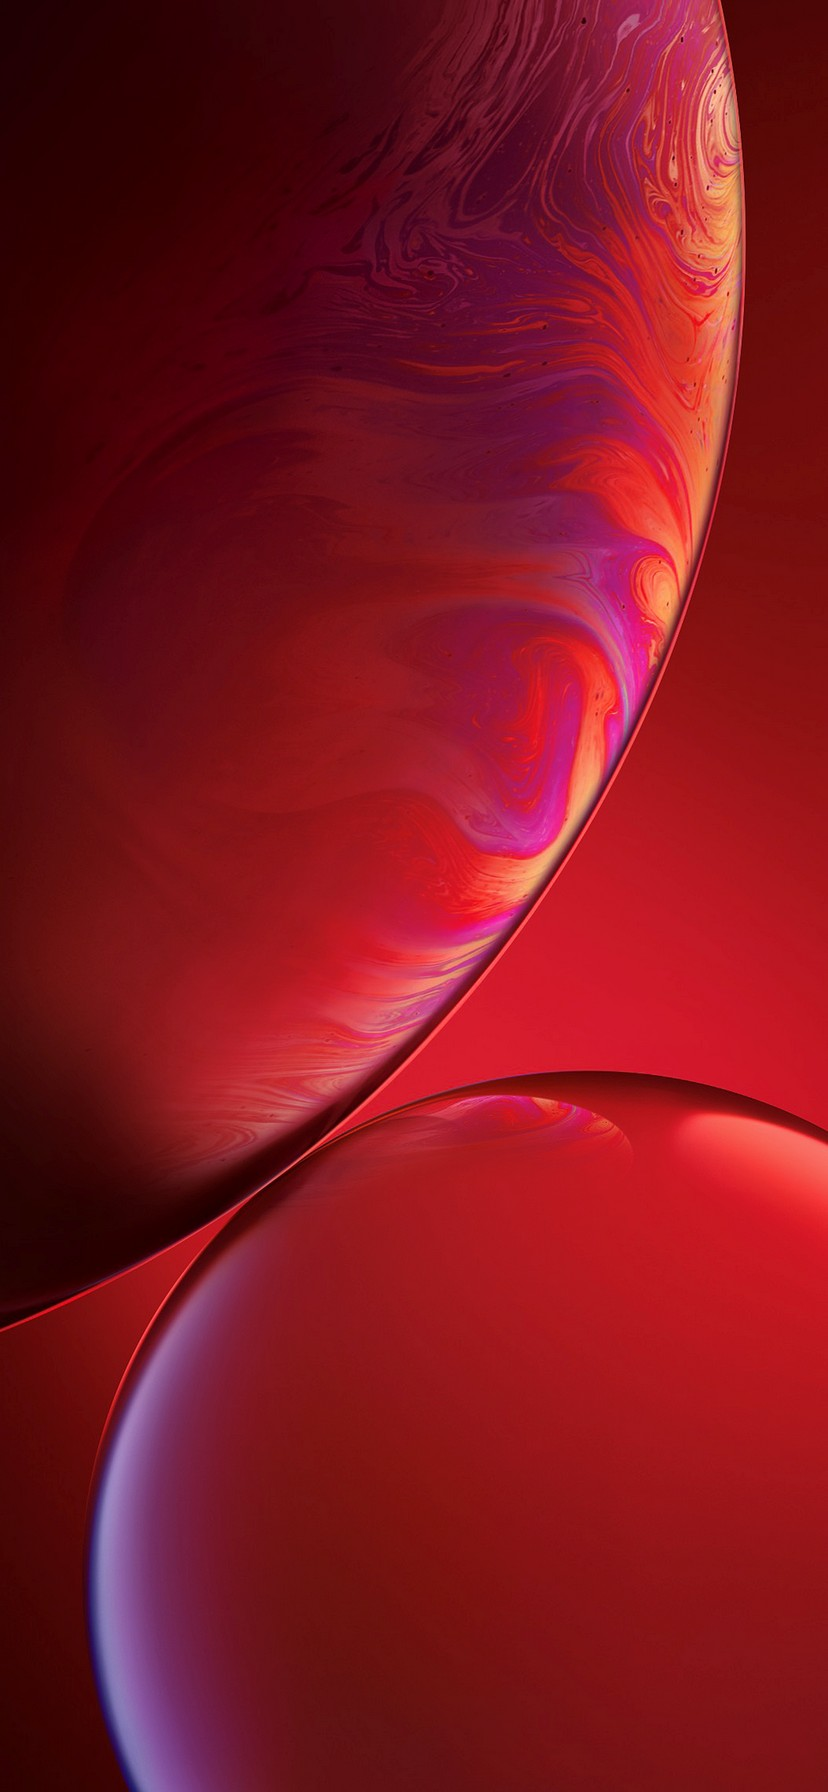 Iphone Xr Wallpaper Hd With High resolution Pixel   Iphone Xr ...